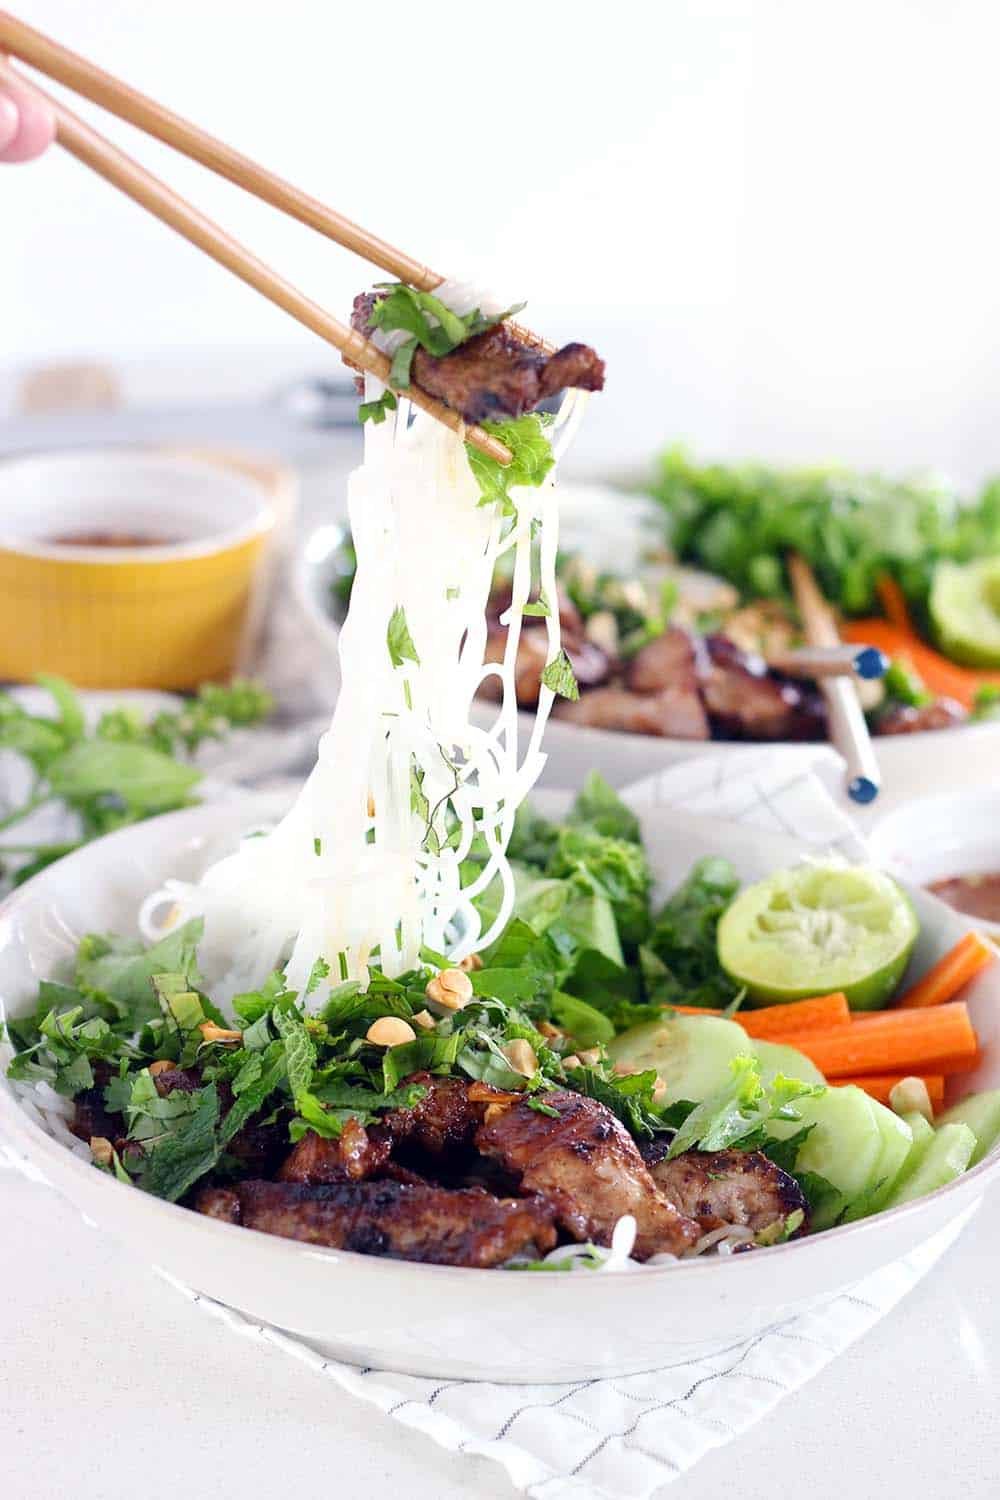 This recipe for Vietnamese Pork Bún Bowls uses a few shortcuts to make it quick and easy without sacrificing flavor. It's fresh, healthy, gluten free, and adaptable to be vegan/vegetarian! | www.bowlofdelicious.com